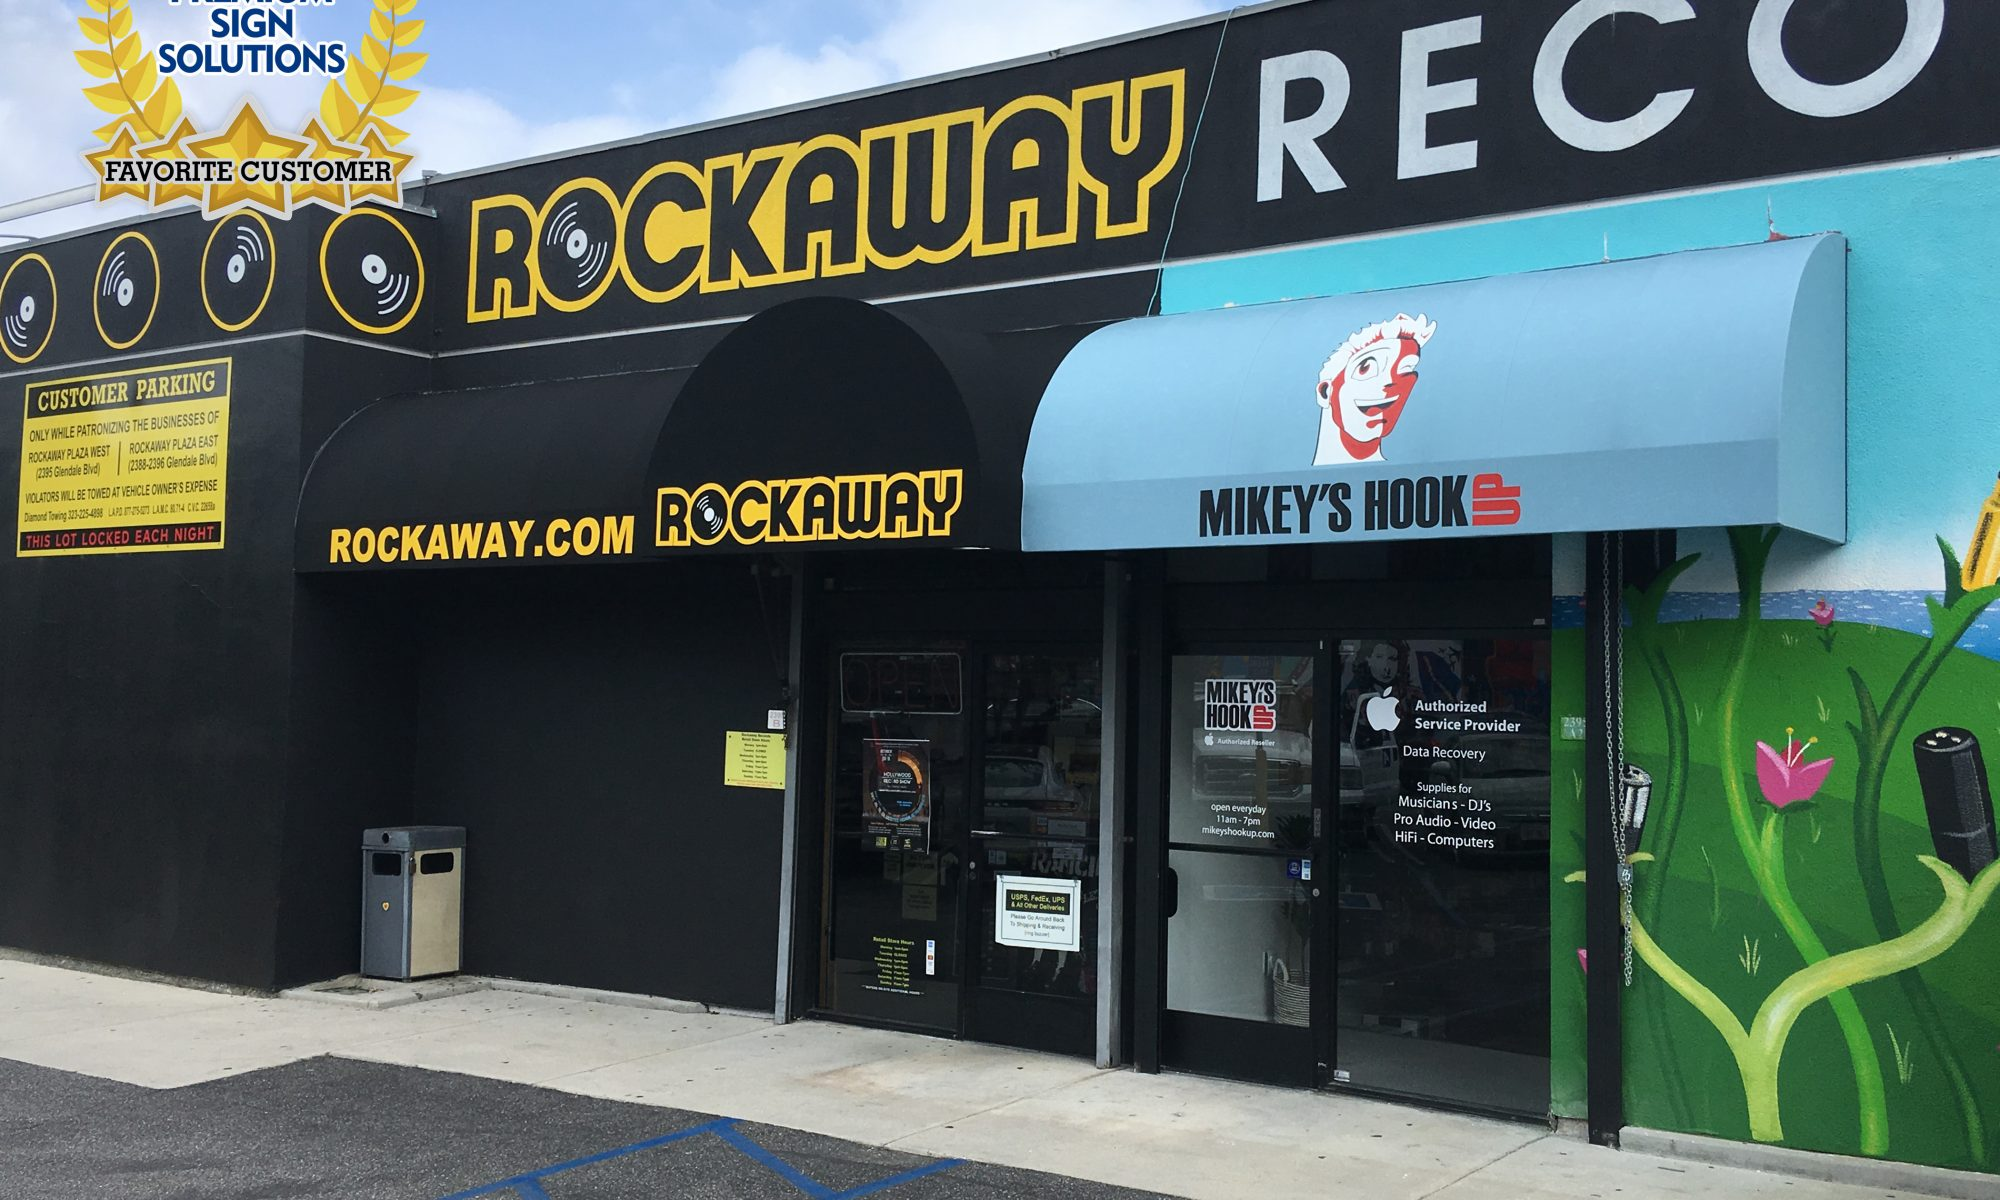 We were fortunate enough to make signage for Rockaway Records, namely an awning sign along with a number of metal parking lot and wayfinding signs